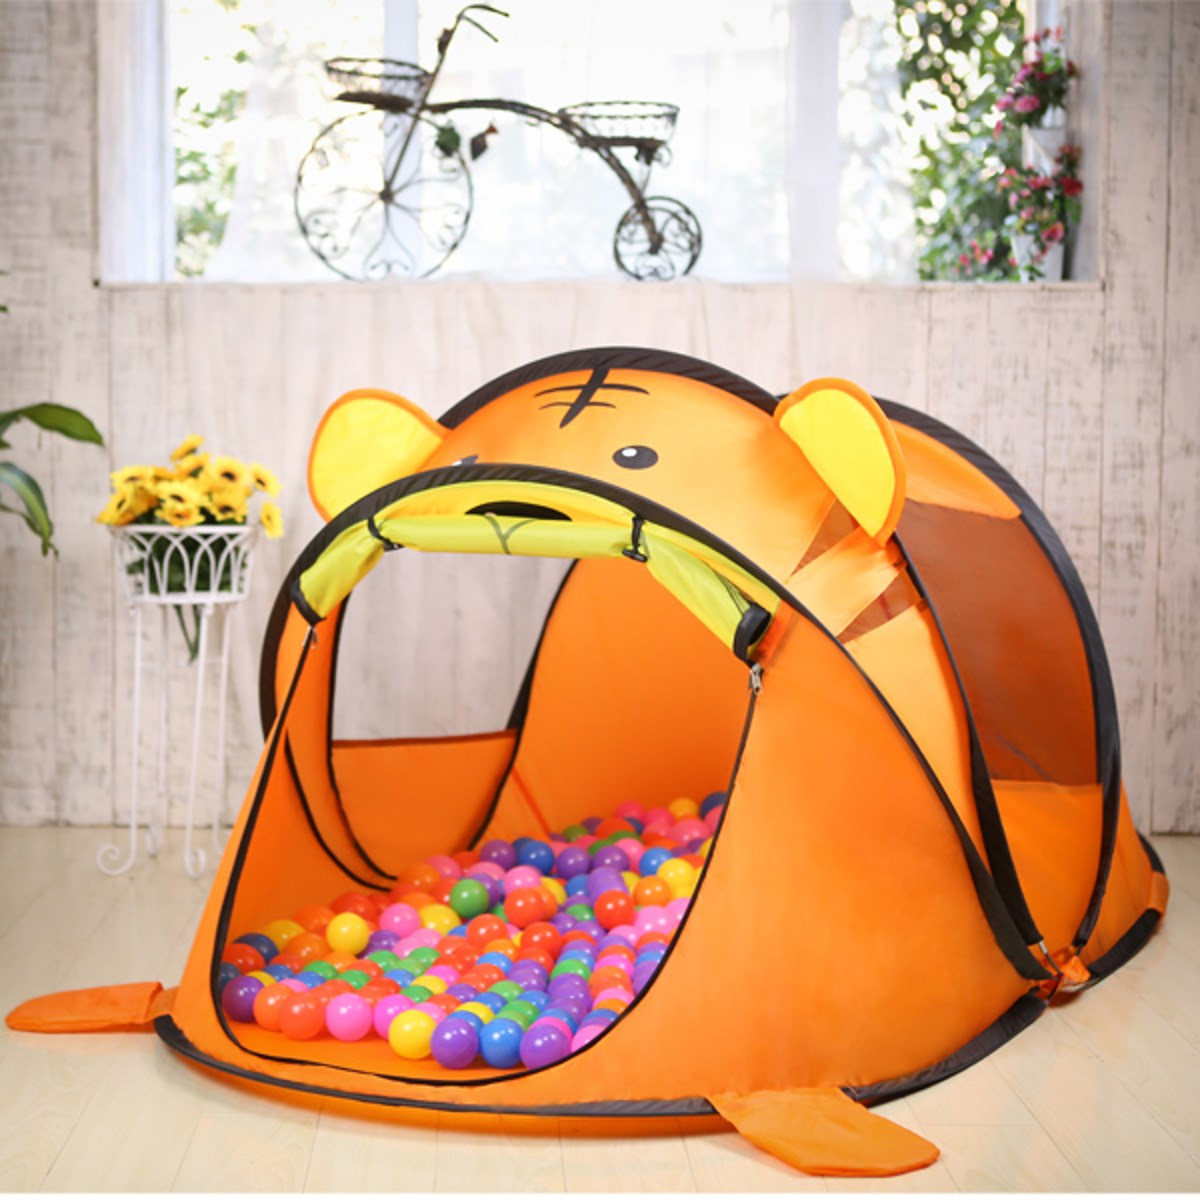 Lovely Portable Cartoon Animal <font><b>Kids</b></font> Toys Tent Children <font><b>Kids</b></font> Indoor Outdoor Playing House Folding Baby Toy Tent Child Gifts